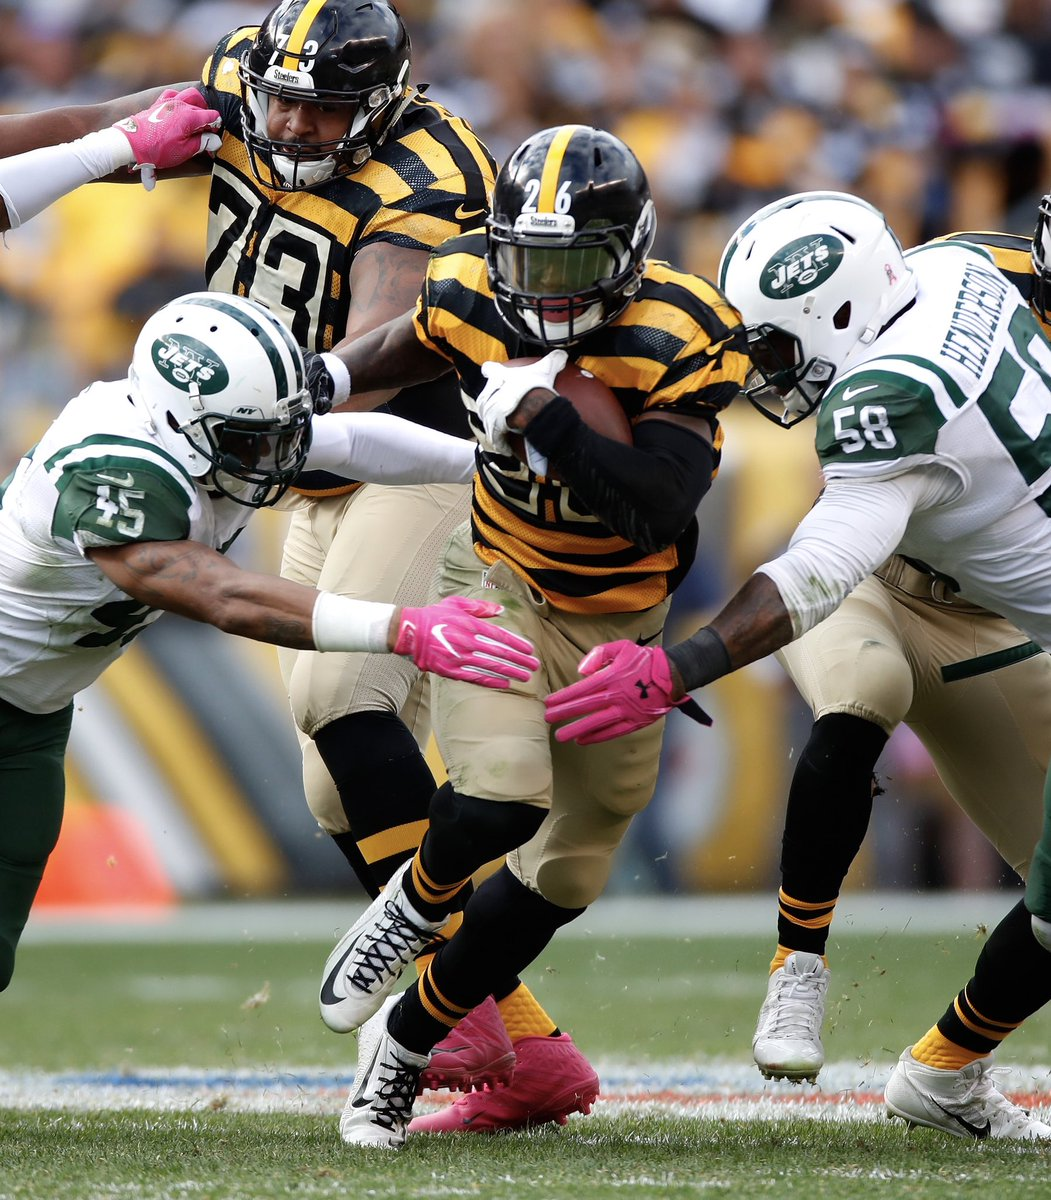 Jets Steelers, Sunday December 22nd. I got a feeling something miiight be a little different this time around... 👀😂